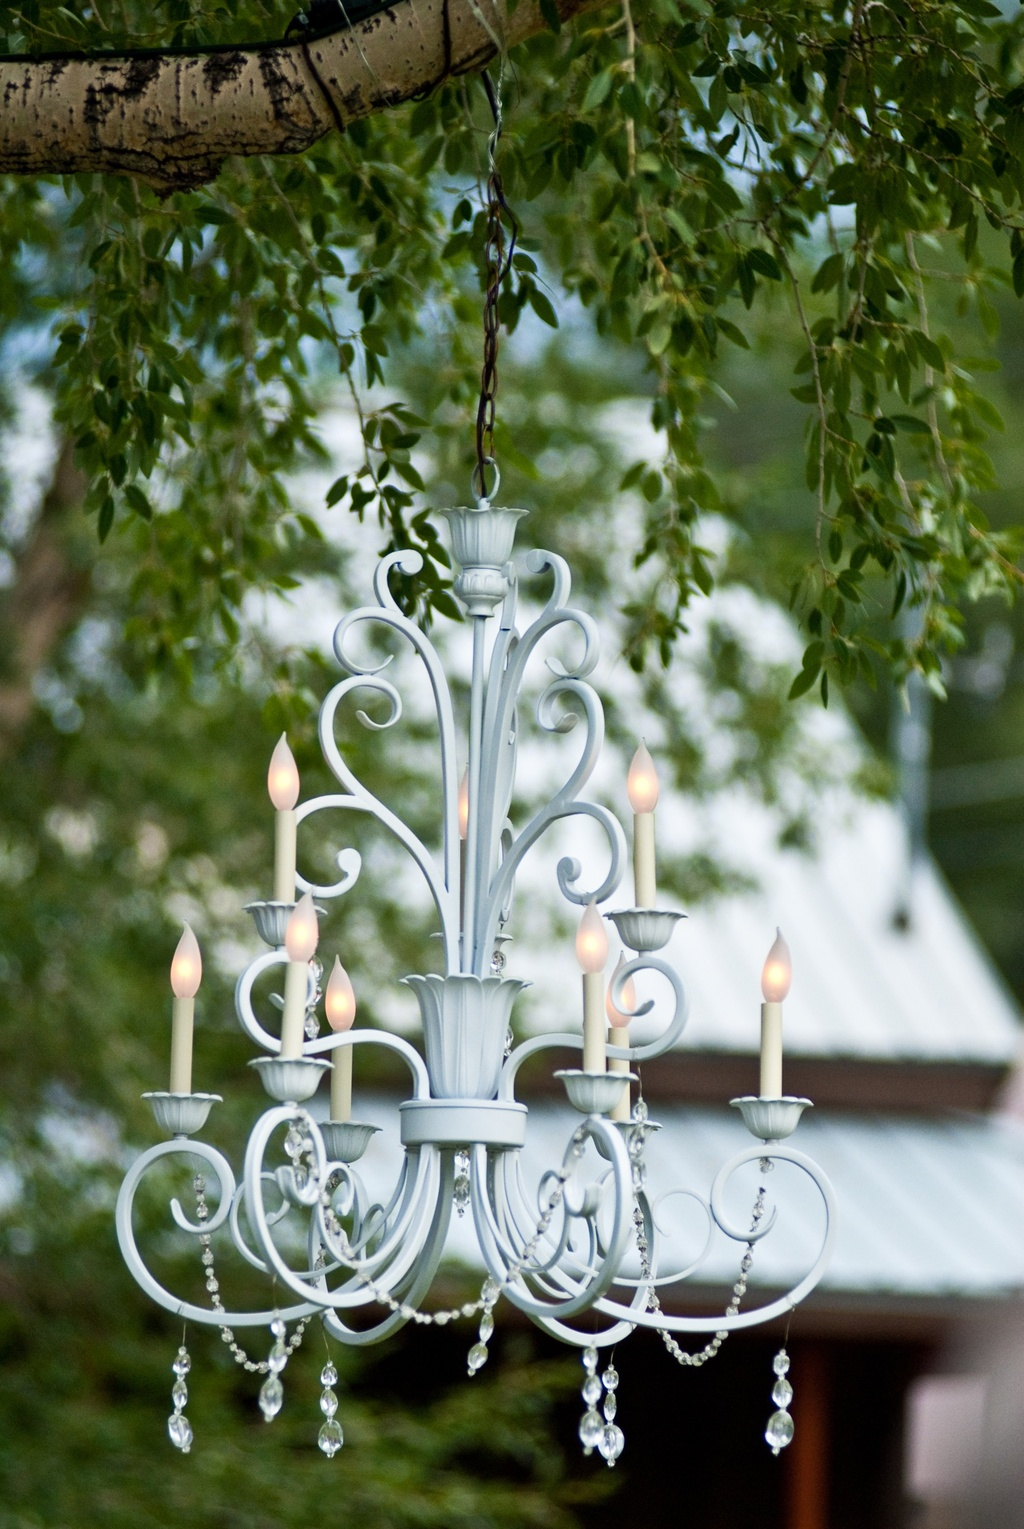 Outdoor-wedding-venue-chandelier-wedding-reception-decor.full